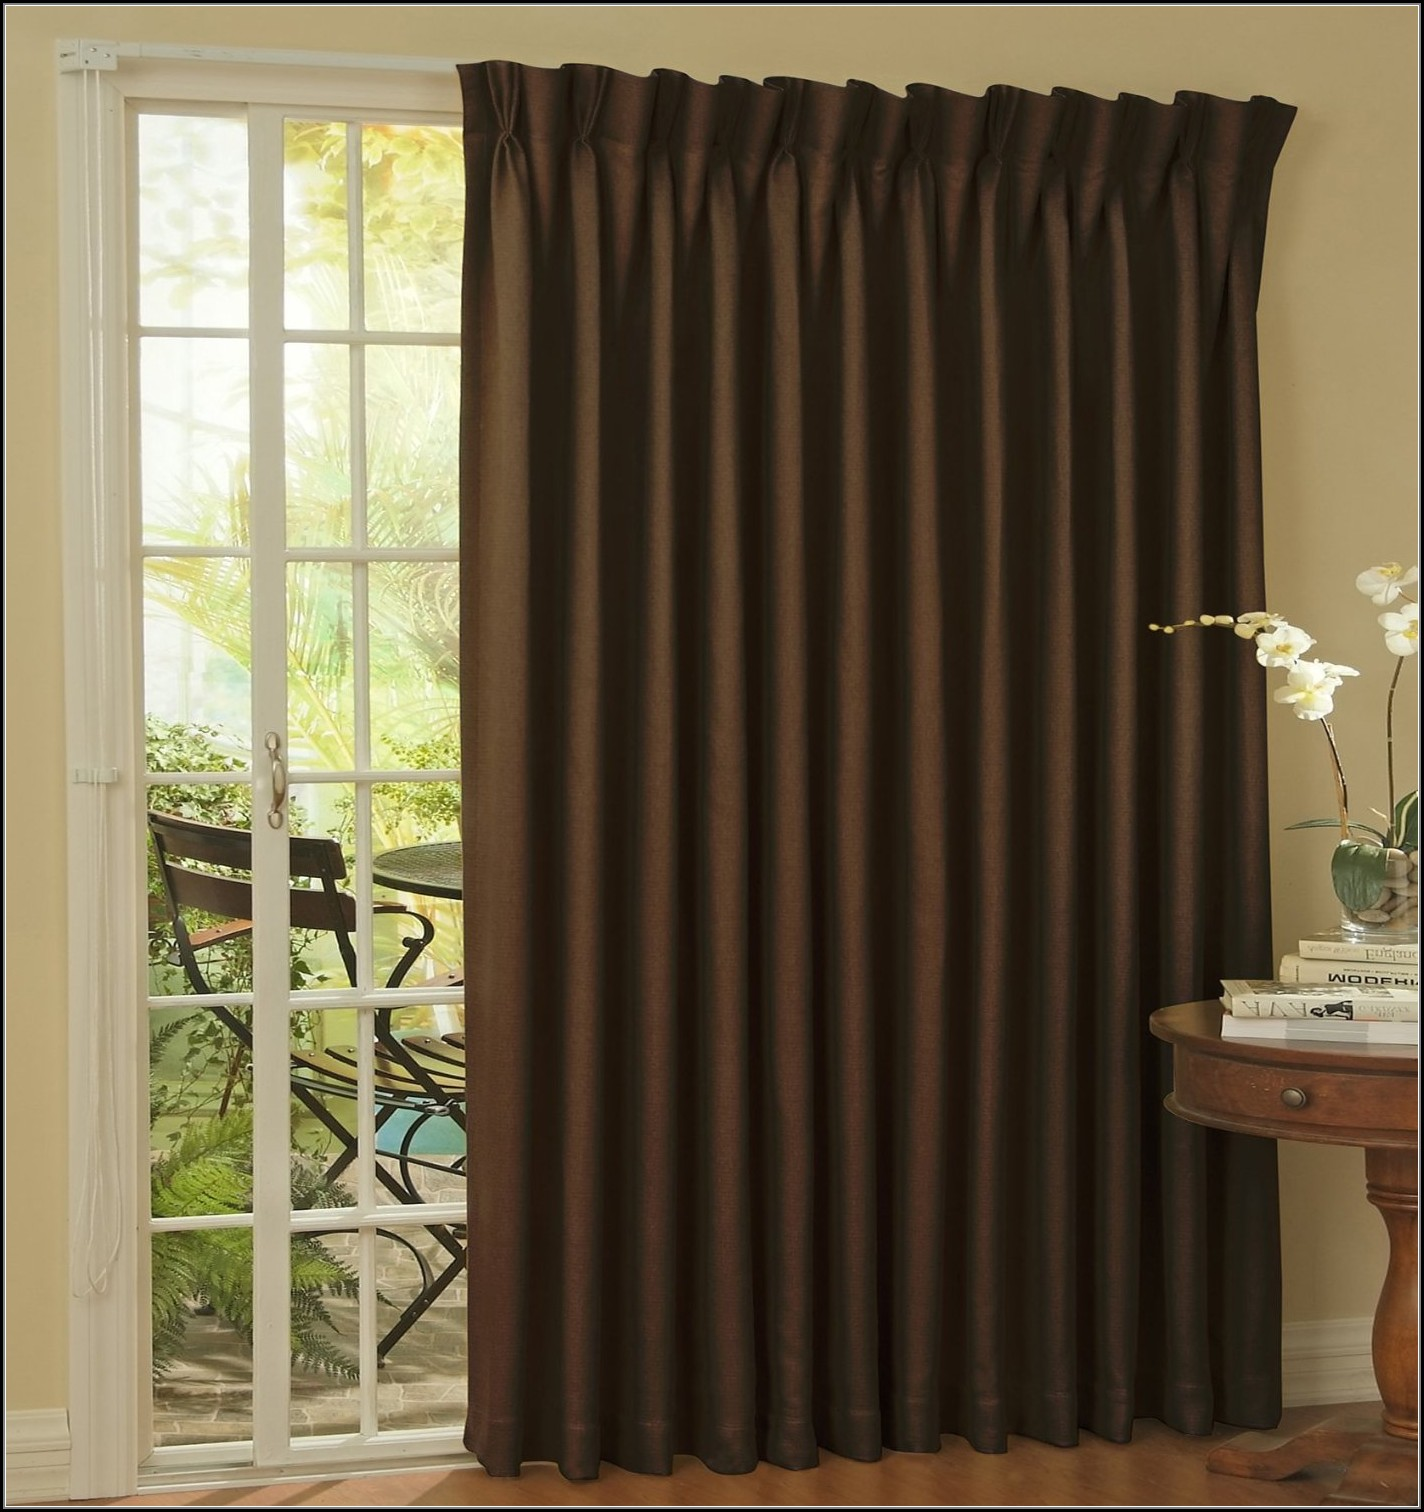 Thermal Patio Door Curtain Panel